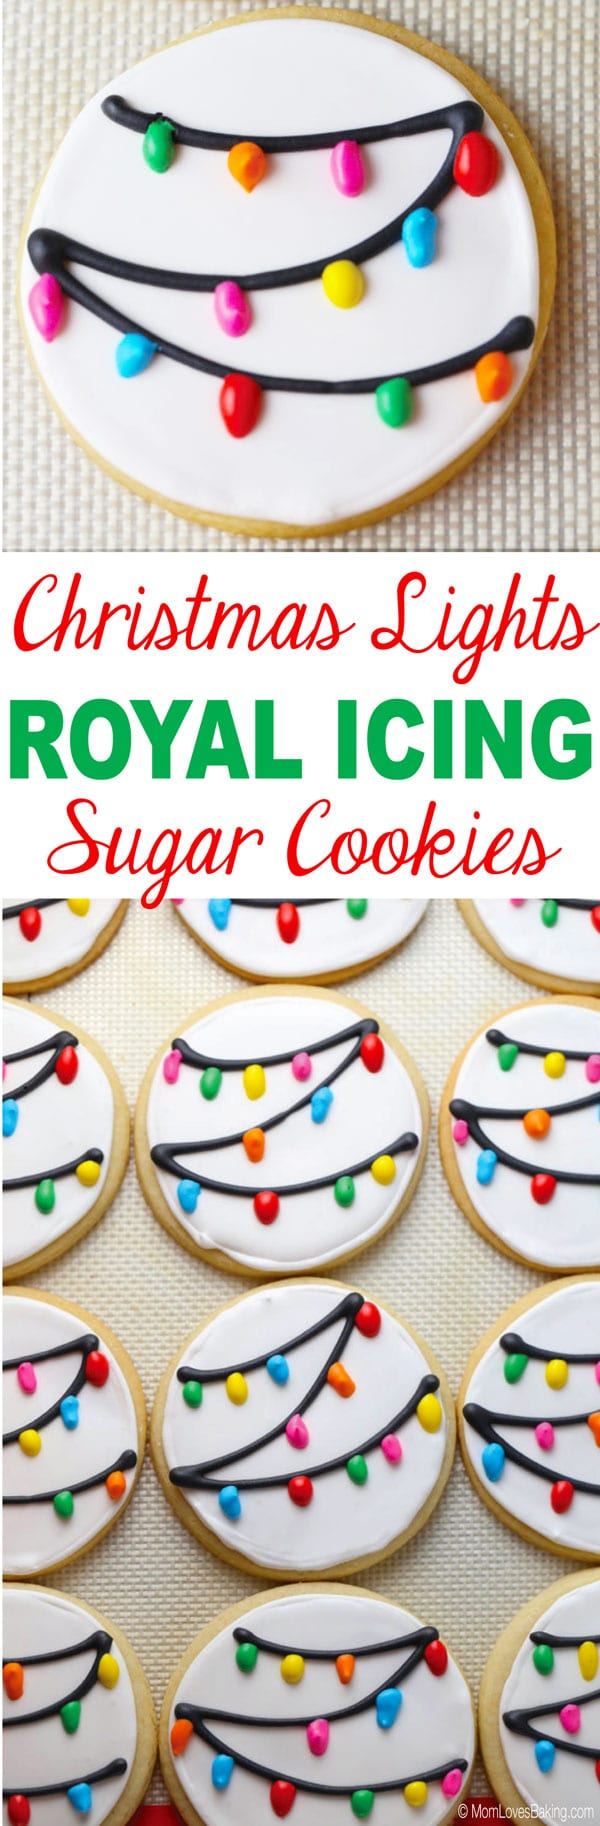 Christmas Lights Royal Icing Sugar Cookies